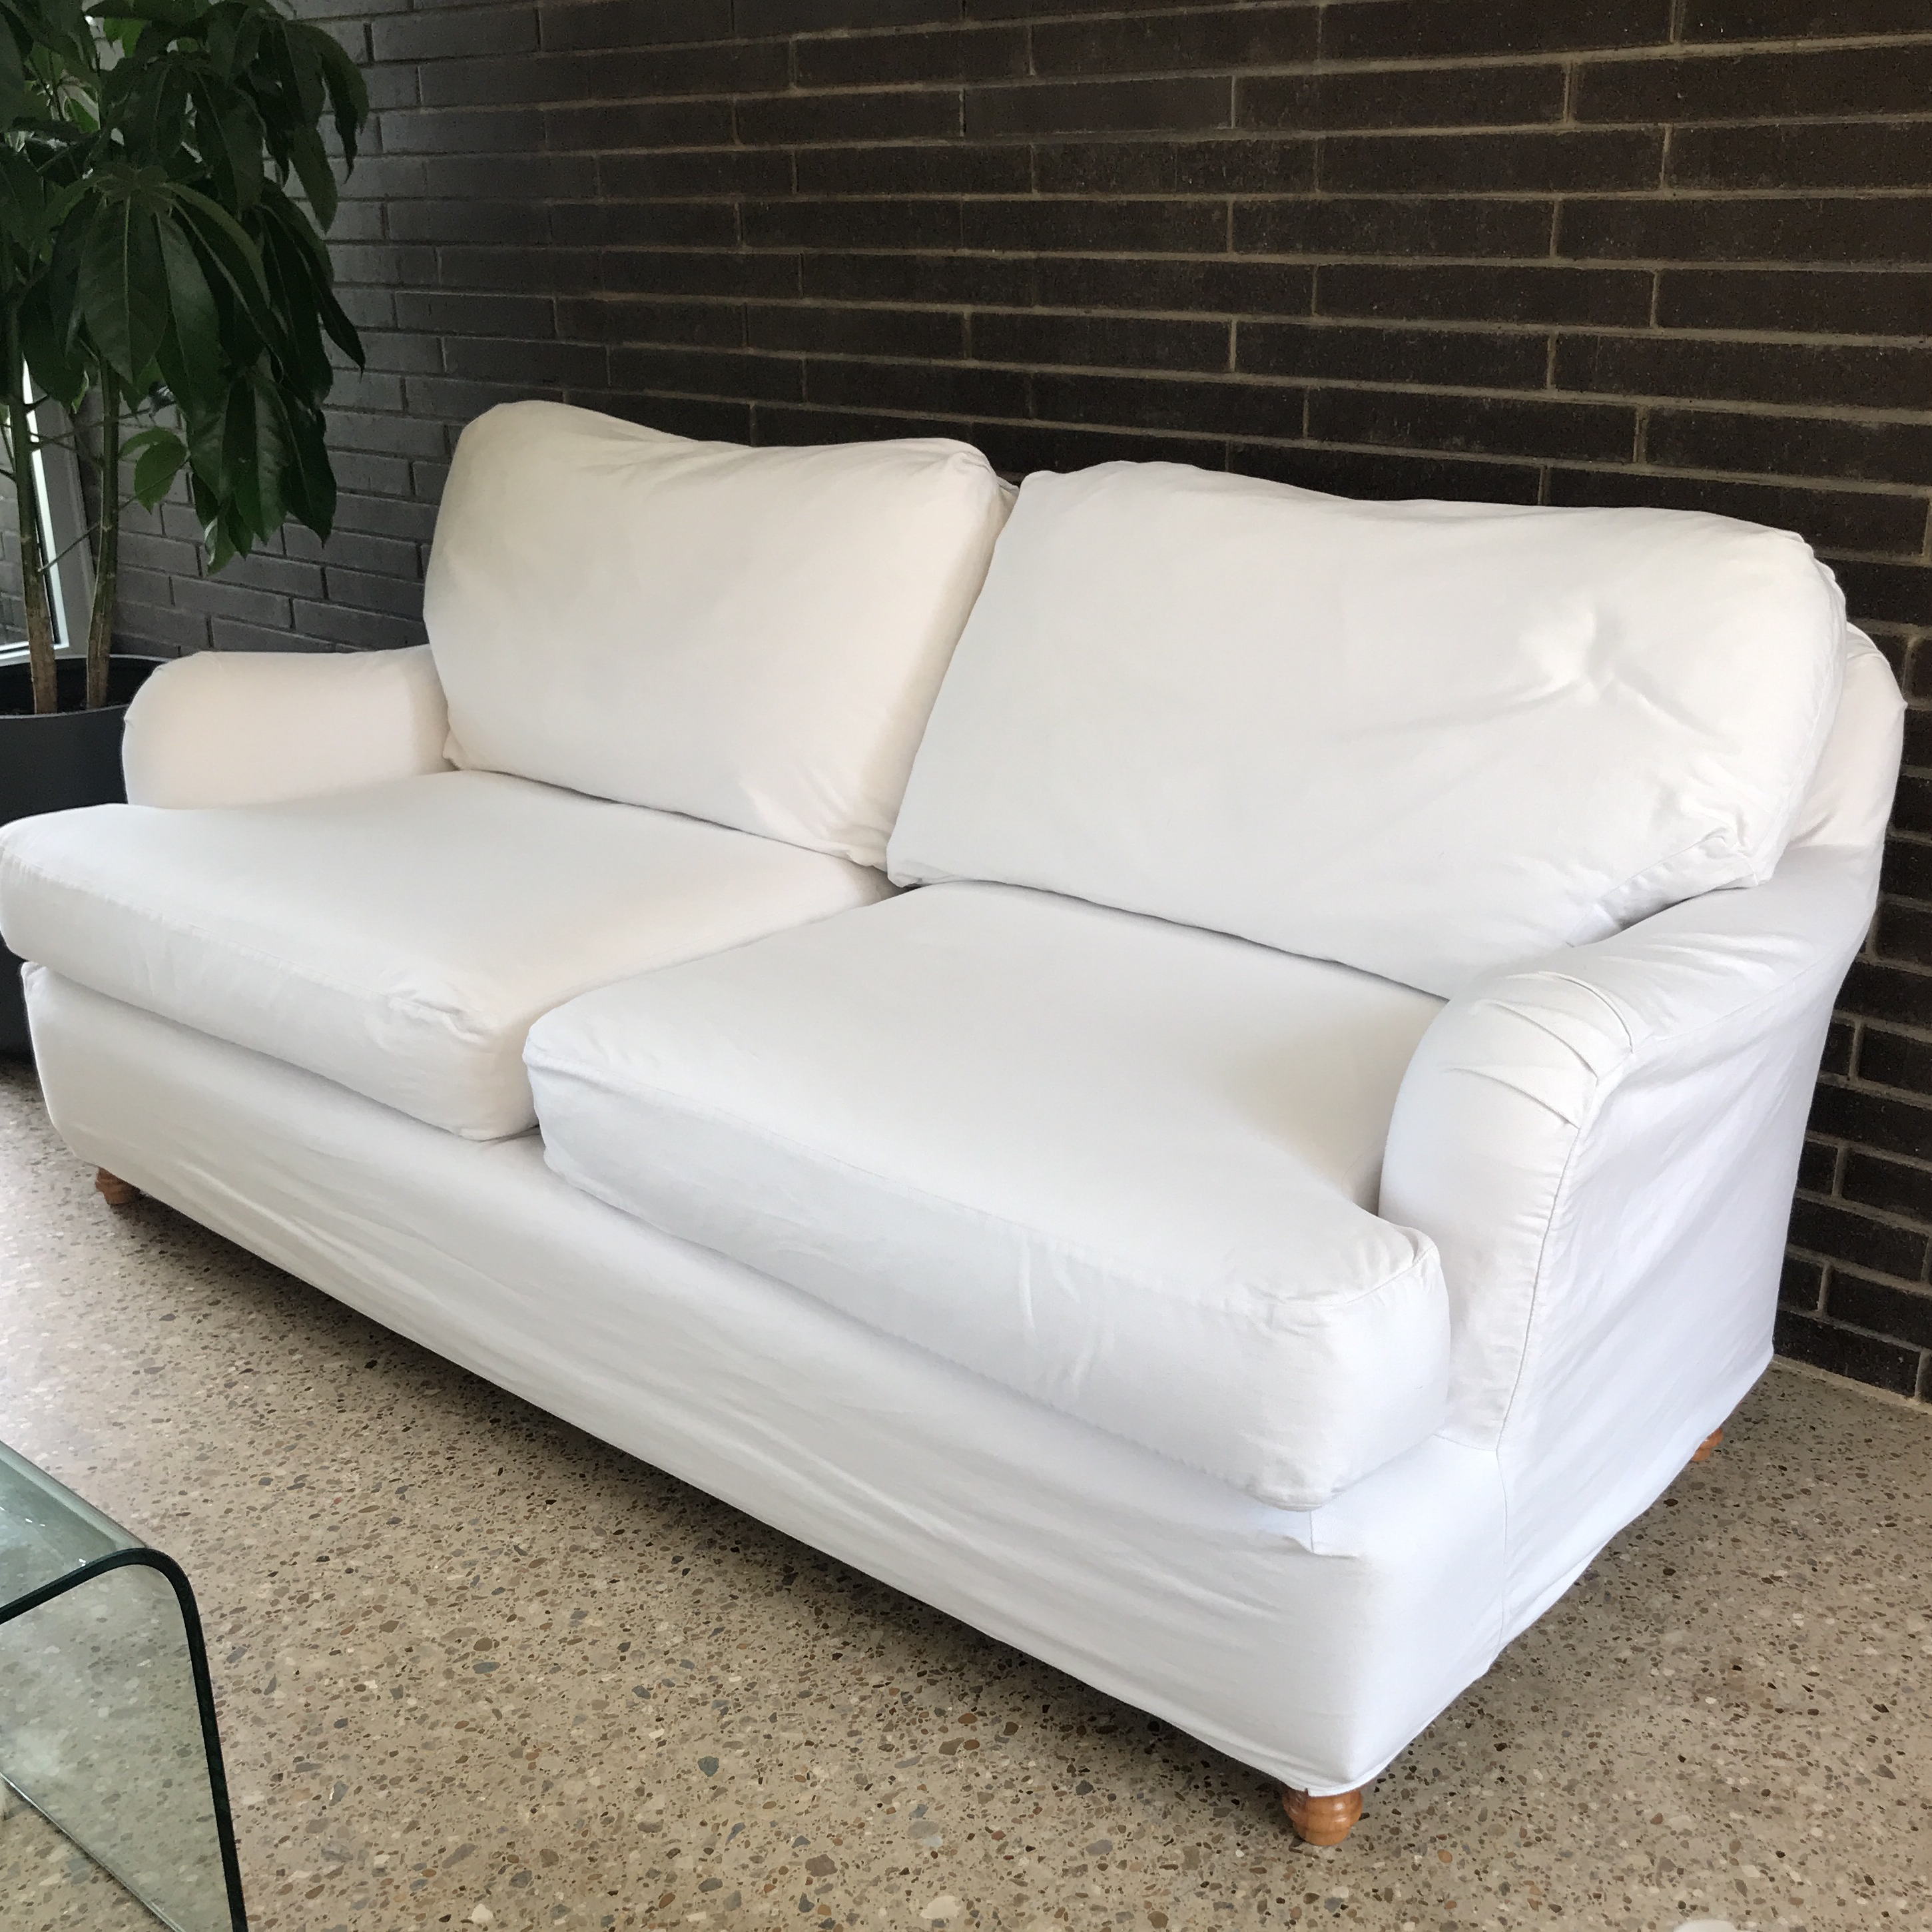 This Is A Vintage Quatrine Milan Sofa With A Removable Machine Washable  Cover. This Piece